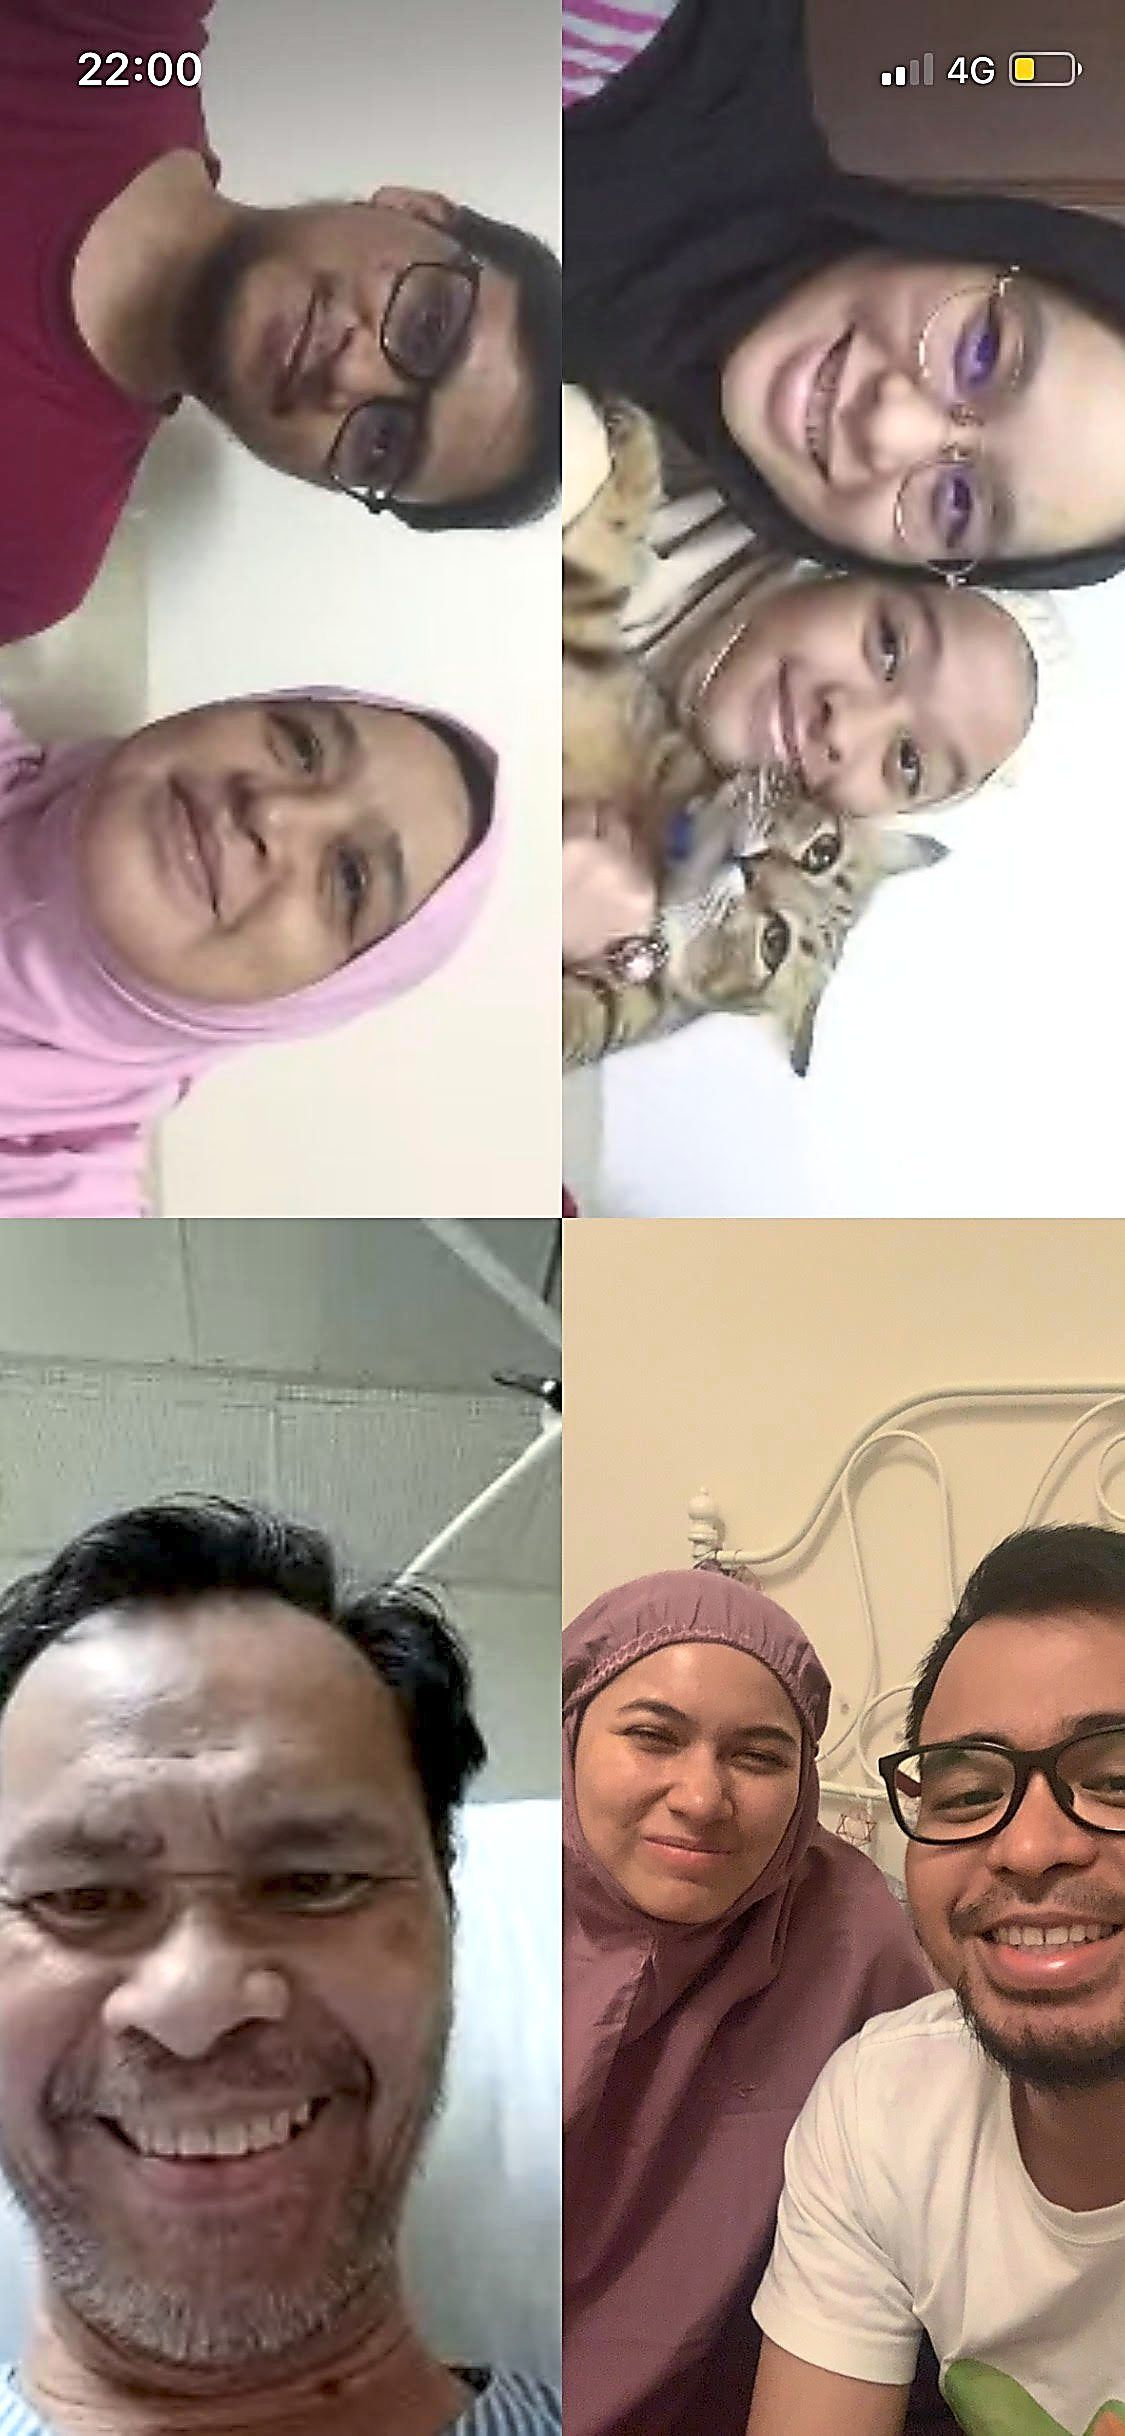 Mahfuz (bottom right) recently managed to get the family together for their first conversation in almost two months, on a video call. His father (bottom left), was warded in the ICU for most part of the MCO, but has since recovered from Covid-19. — MOHAMAD MAHFUZ SHAHARUDIN